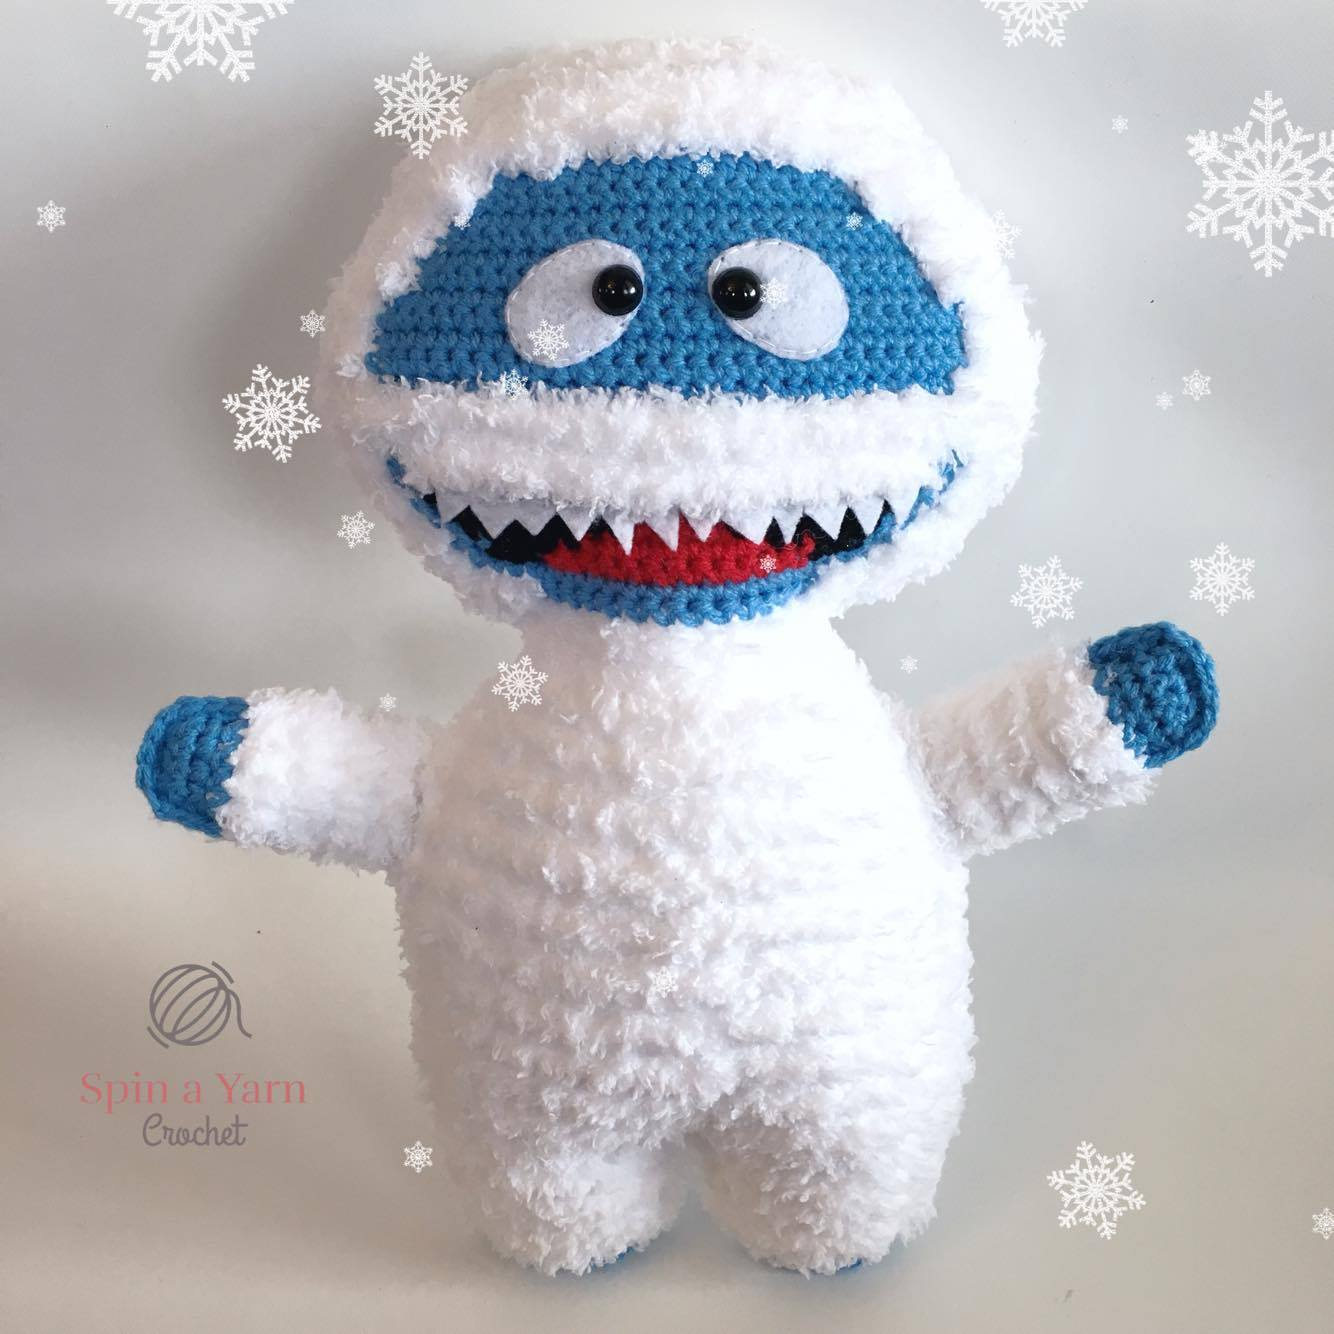 Cuddle Me Snowman amigurumi pattern - Amigurumi Today | 1334x1334